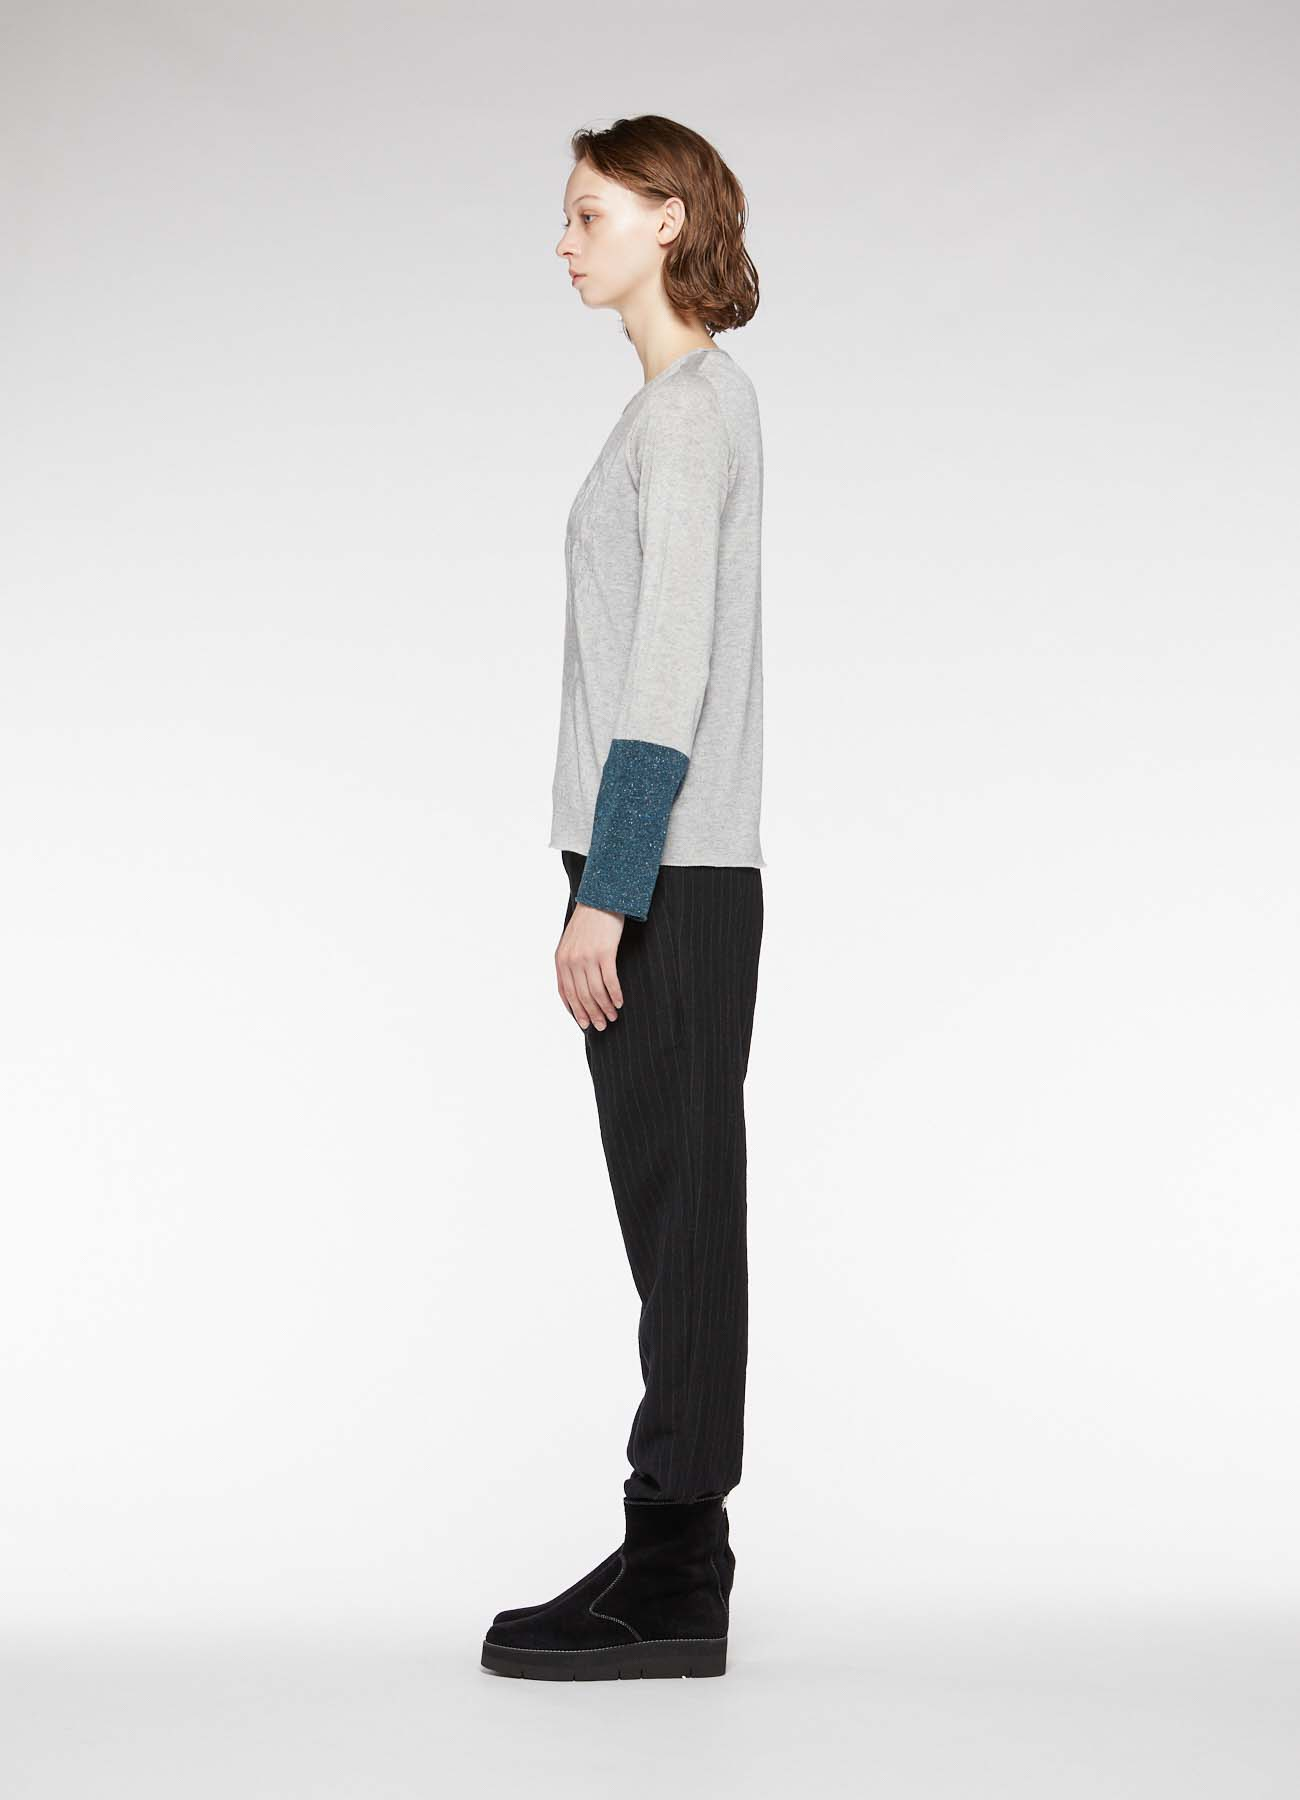 FROWER LINKS ROUND NECK LONG SLEEVE PULLOVER